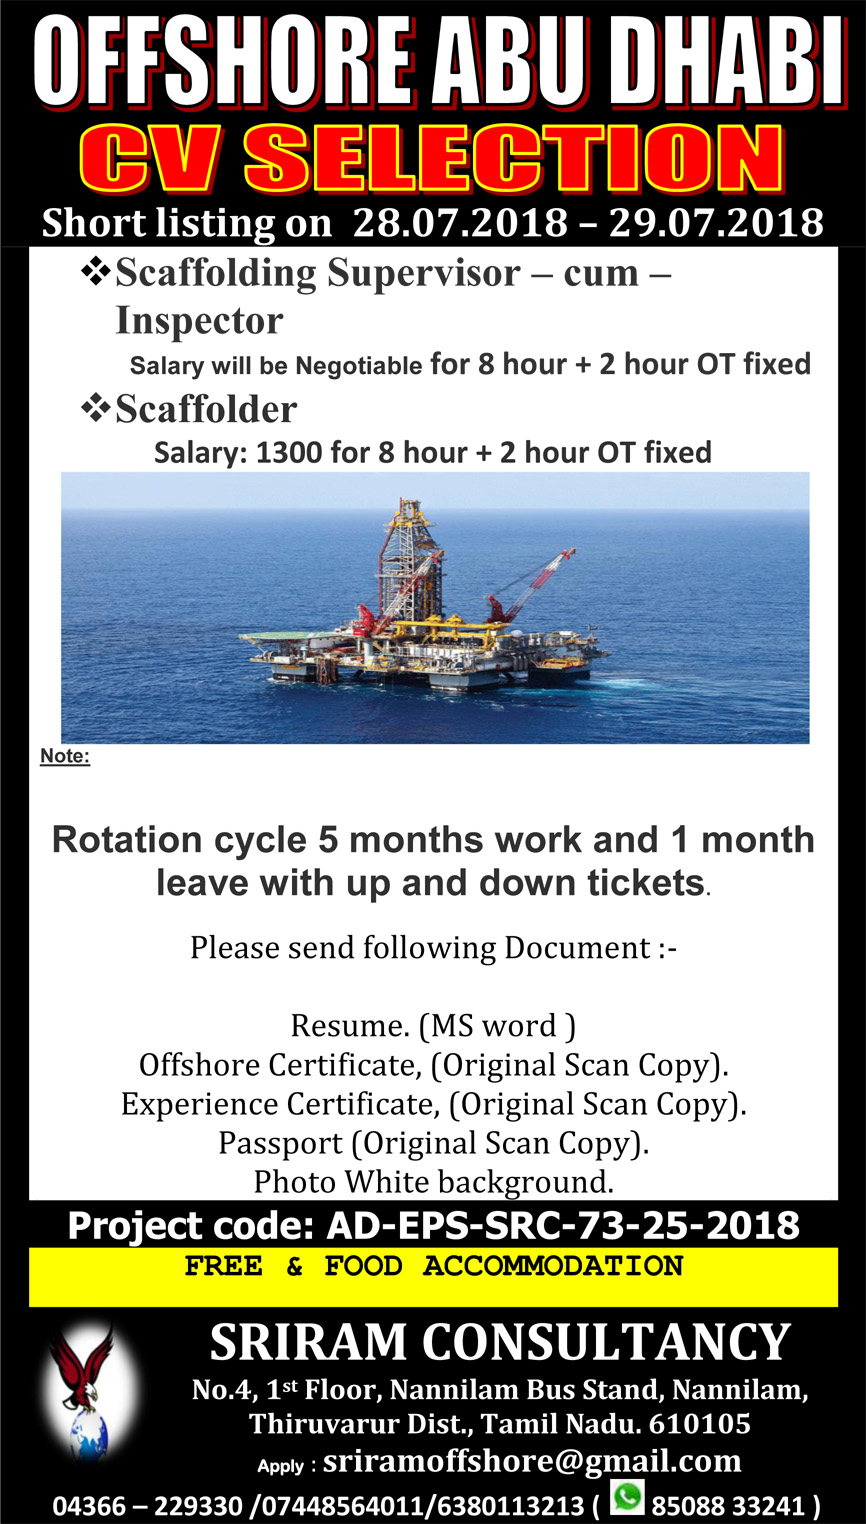 URGENT REQUIREMENT FOR LEADING COMPANY ABU DHABI OFFSHORE